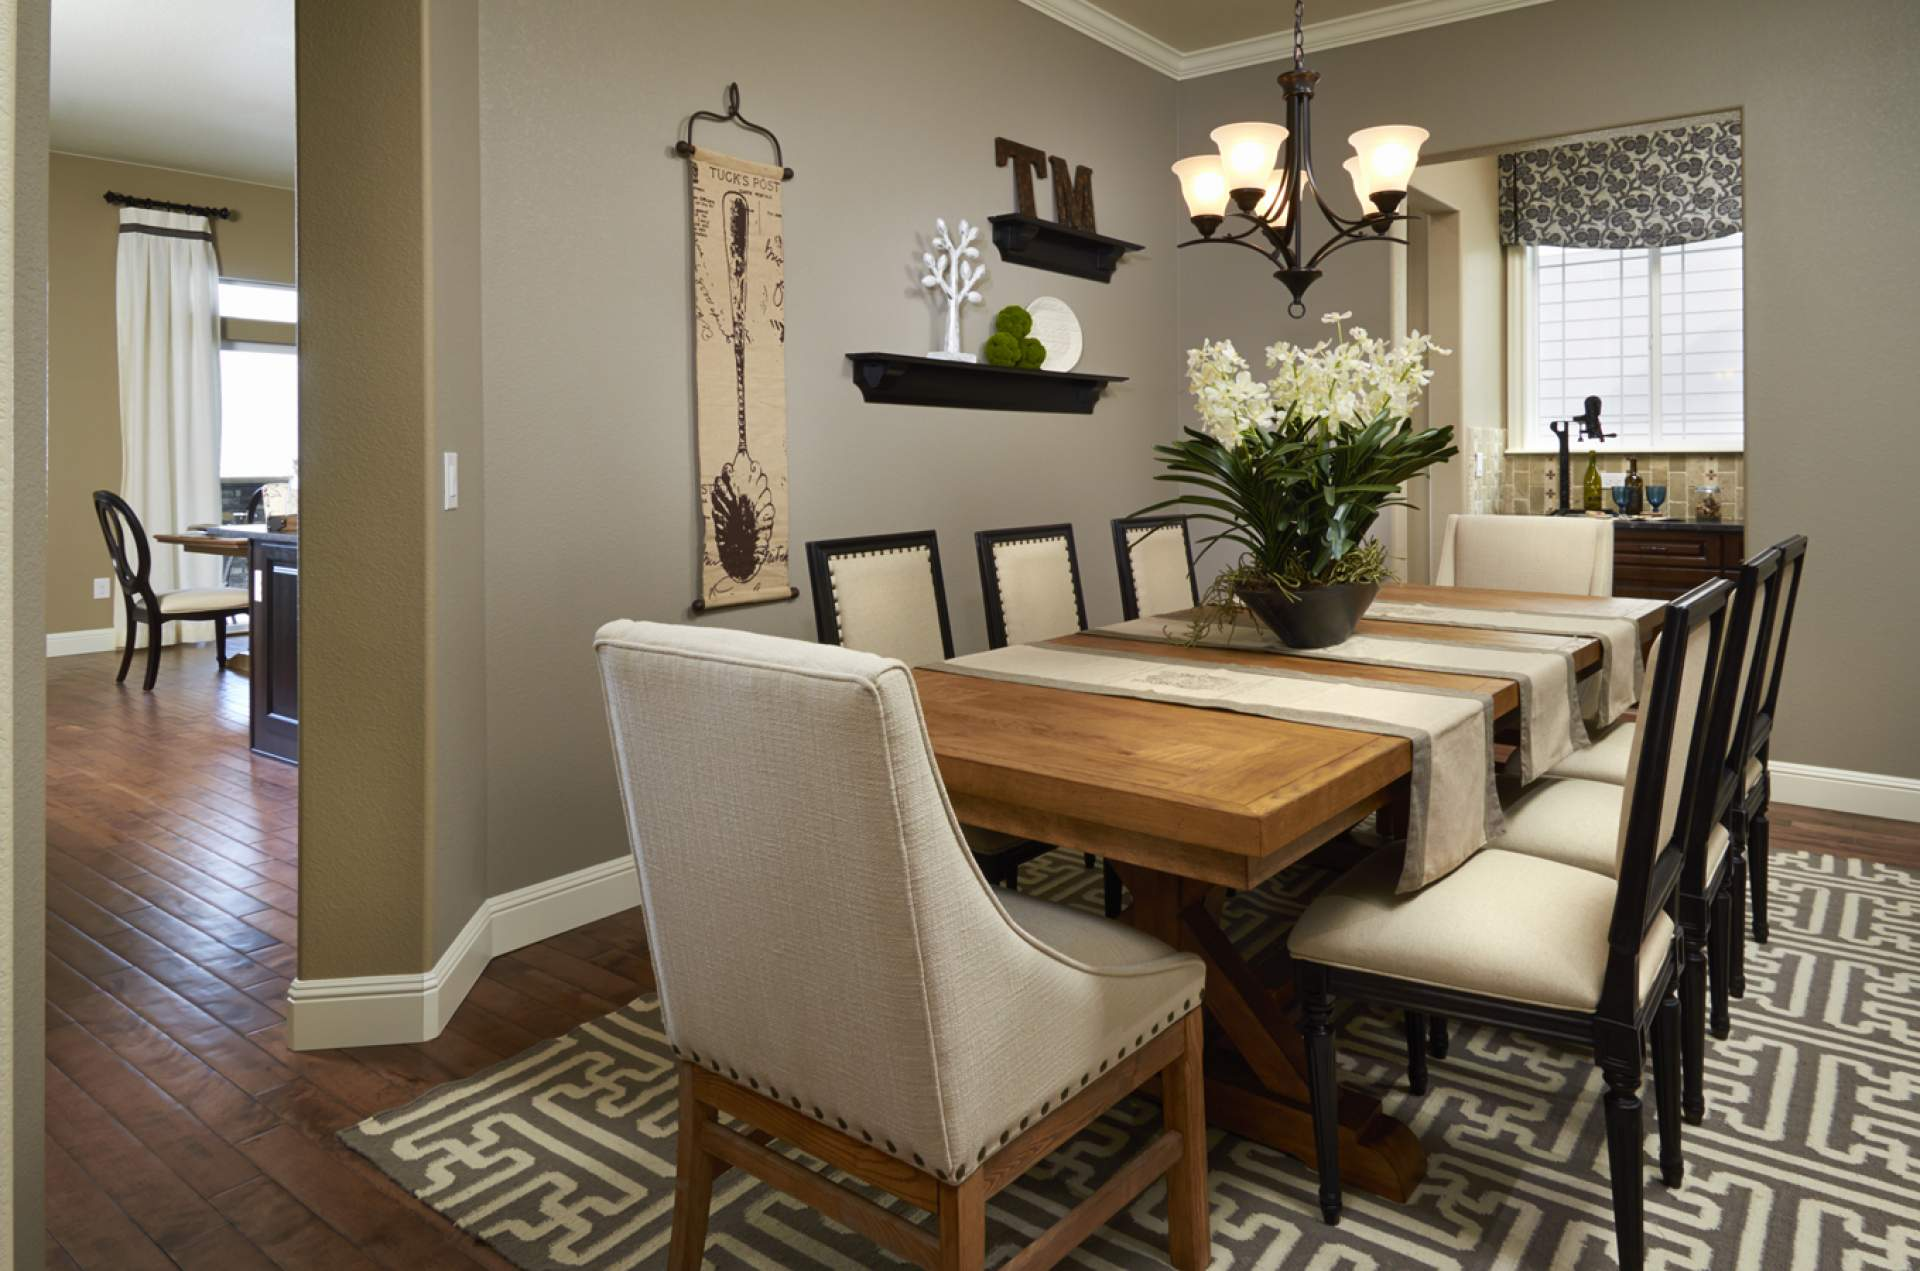 Formal dining room ideas how to choose the best wall for Formal dining room ideas